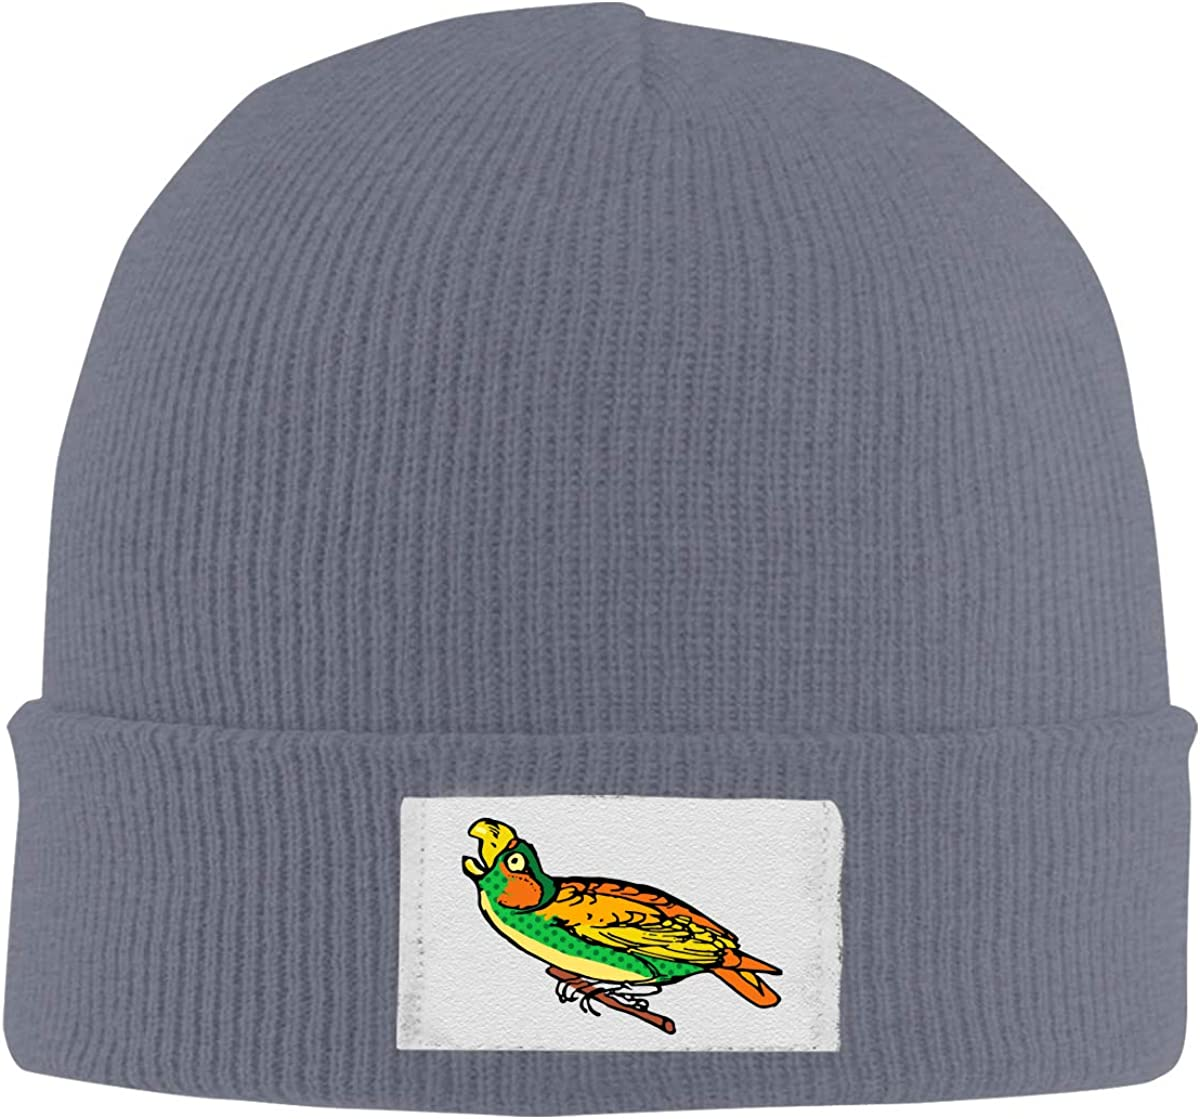 Stretchy Cuff Beanie Hat Black Skull Caps Coloured Parrot Winter Warm Knit Hats